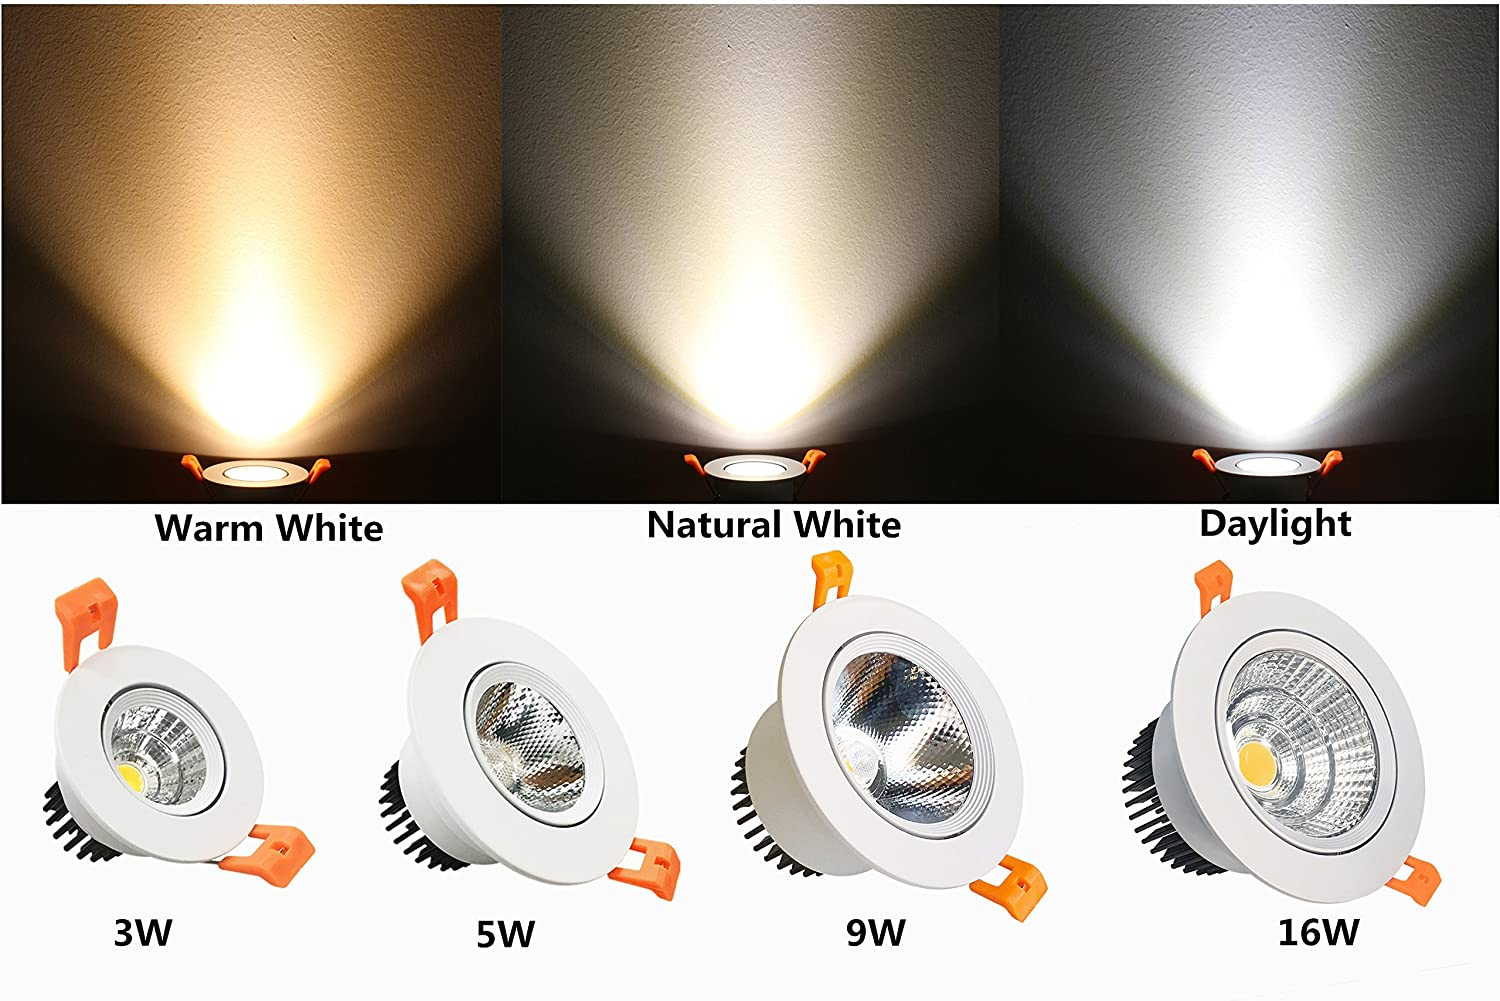 60 Beam Angle 80W Halogen Bulbs Equivalent 10 Pack LightingWill LED Downlight 9W Dimmable Natural White 4000K-4500K CRI80 COB Directional Recessed Ceiling Light Cut-out 3.35in 85mm